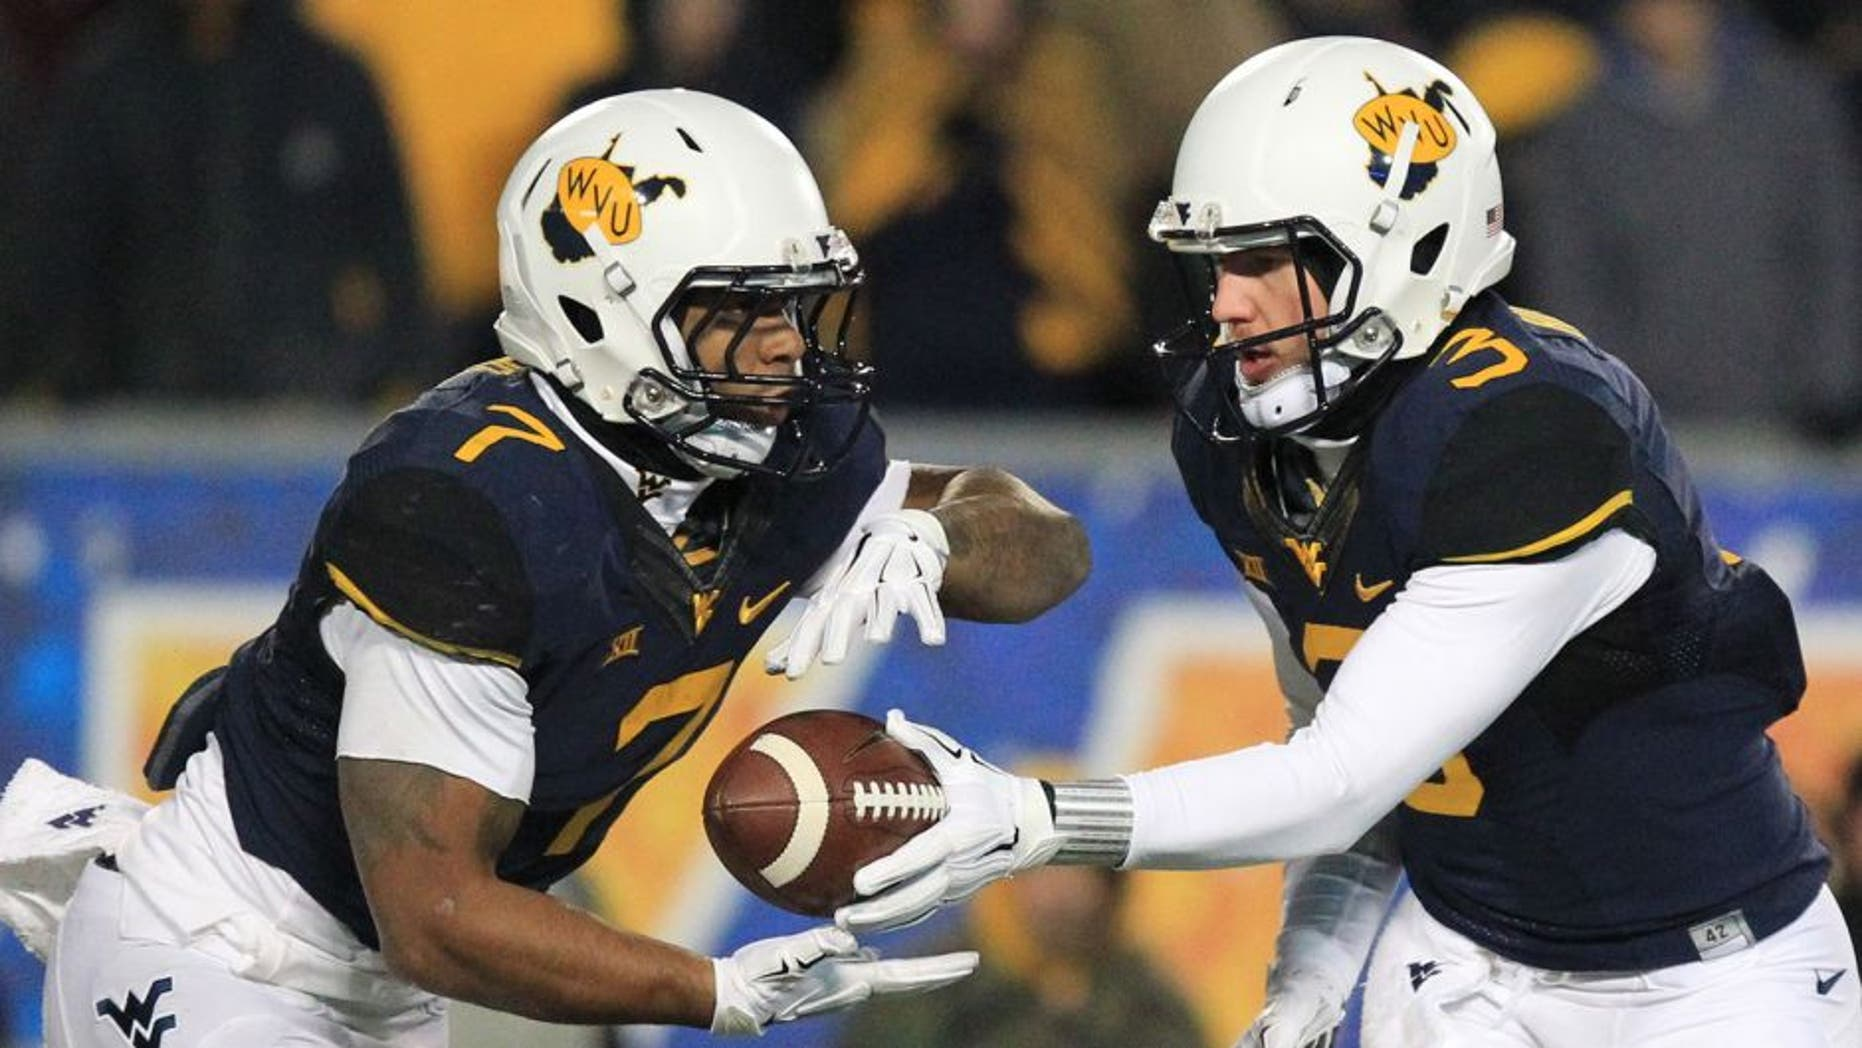 West Virginia quarterback Skyler Howard (3) hands the ball off to Rushel Shell (7) during the second half of an NCAA college football game against Kansas State in Morgantown, W.Va., on Thursday, Nov. 20, 2014. Kansas State won 26-20. (AP Photo/Chris Jackson)